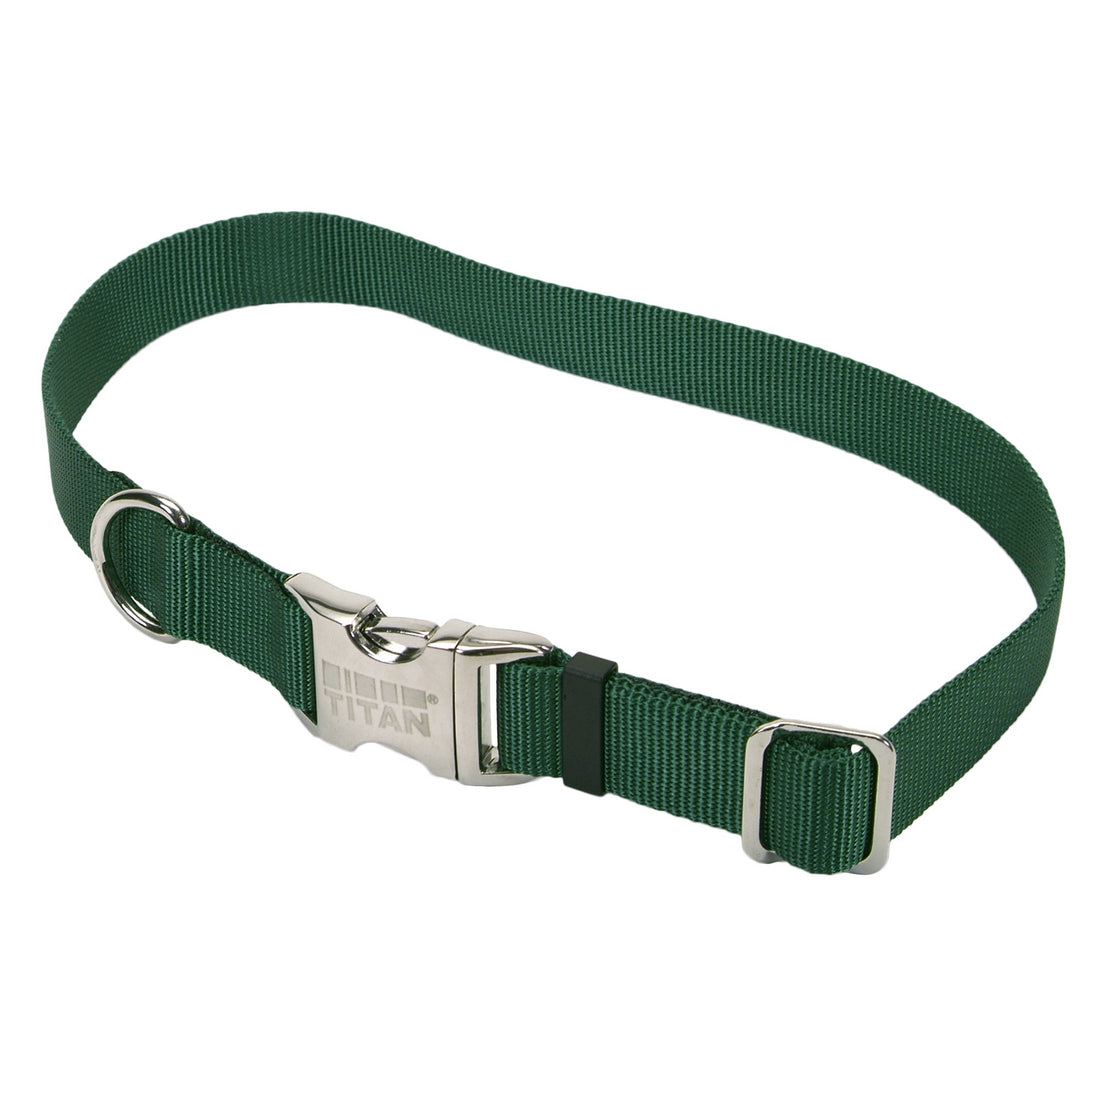 Coastal Adjustable Nylon Collar with Metal Buckle Large Hunter